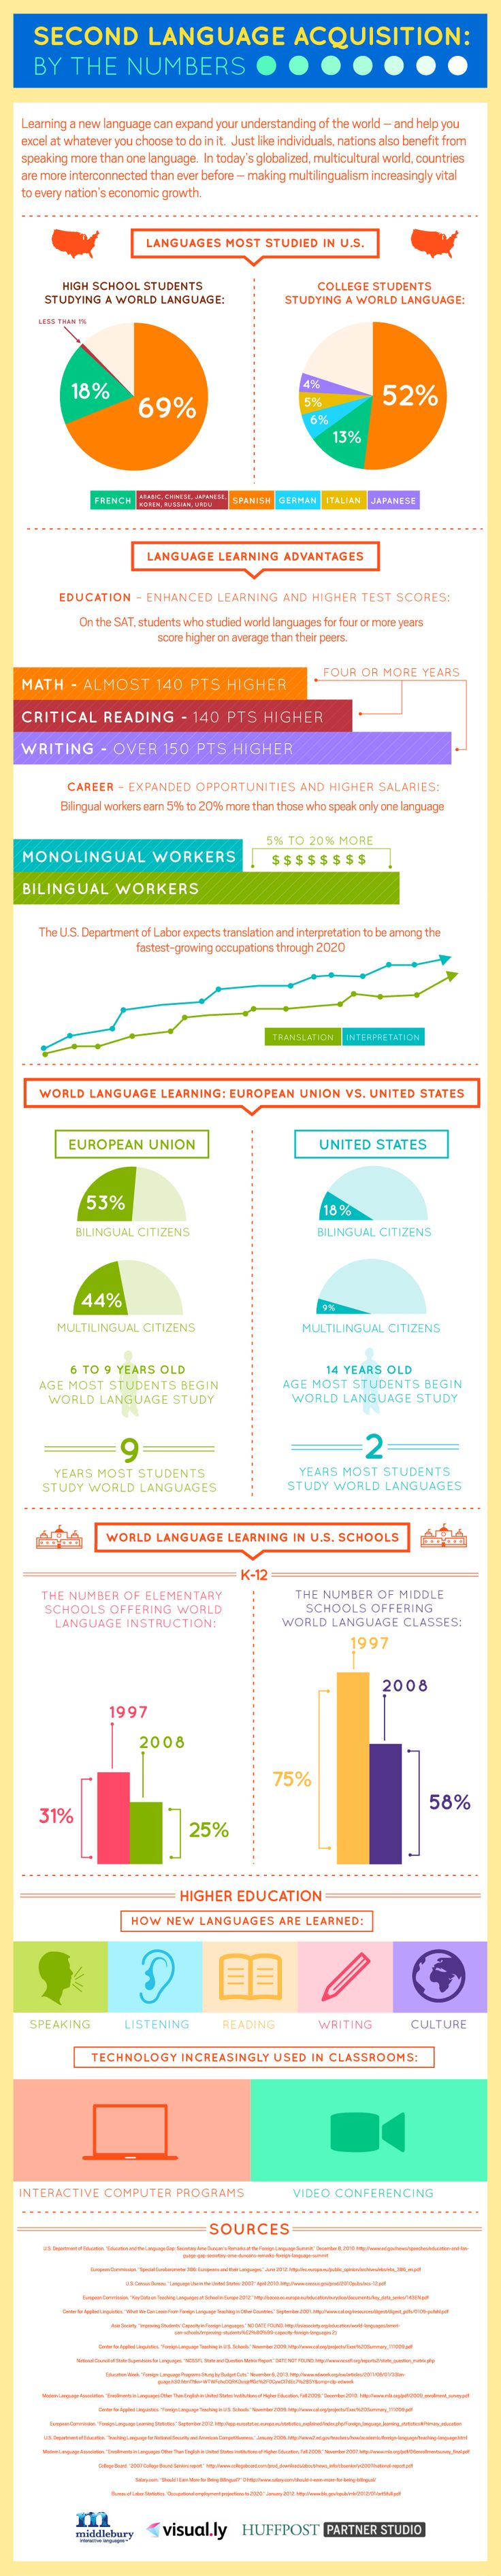 best ideas about foreign language teaching second language acquisition by the numbers infographic